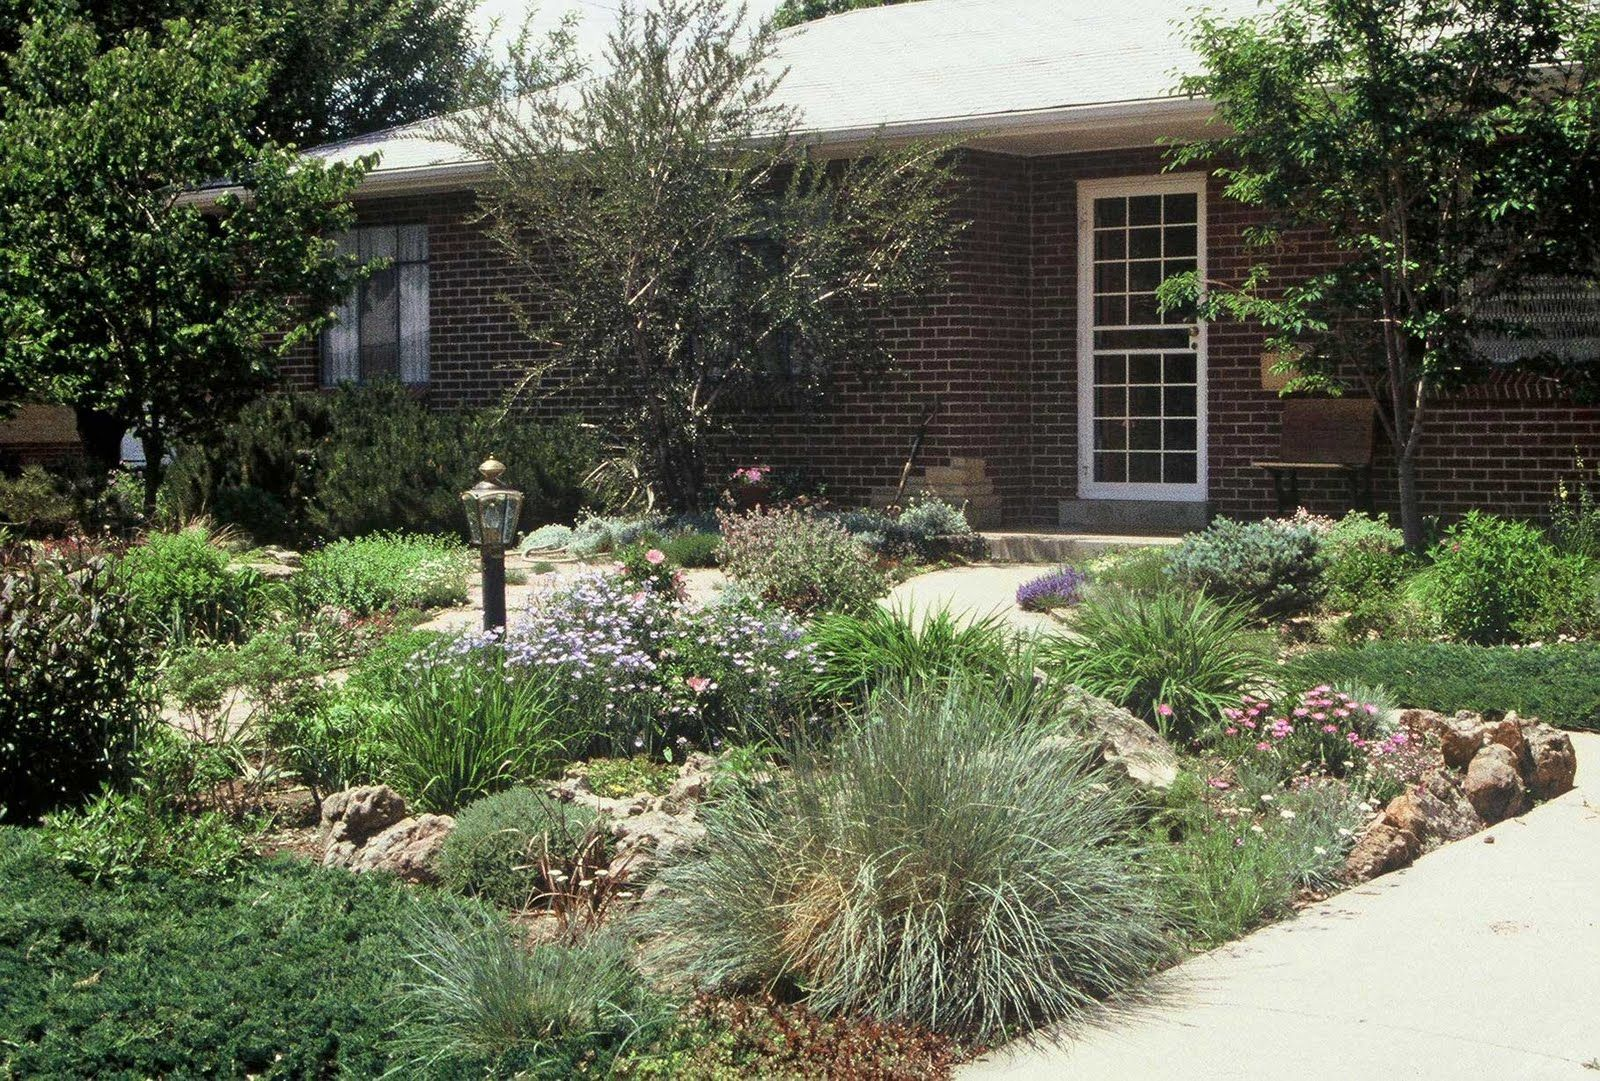 Simple landscaping ideas for front yards backyard ideas for Basic landscaping ideas for front yard